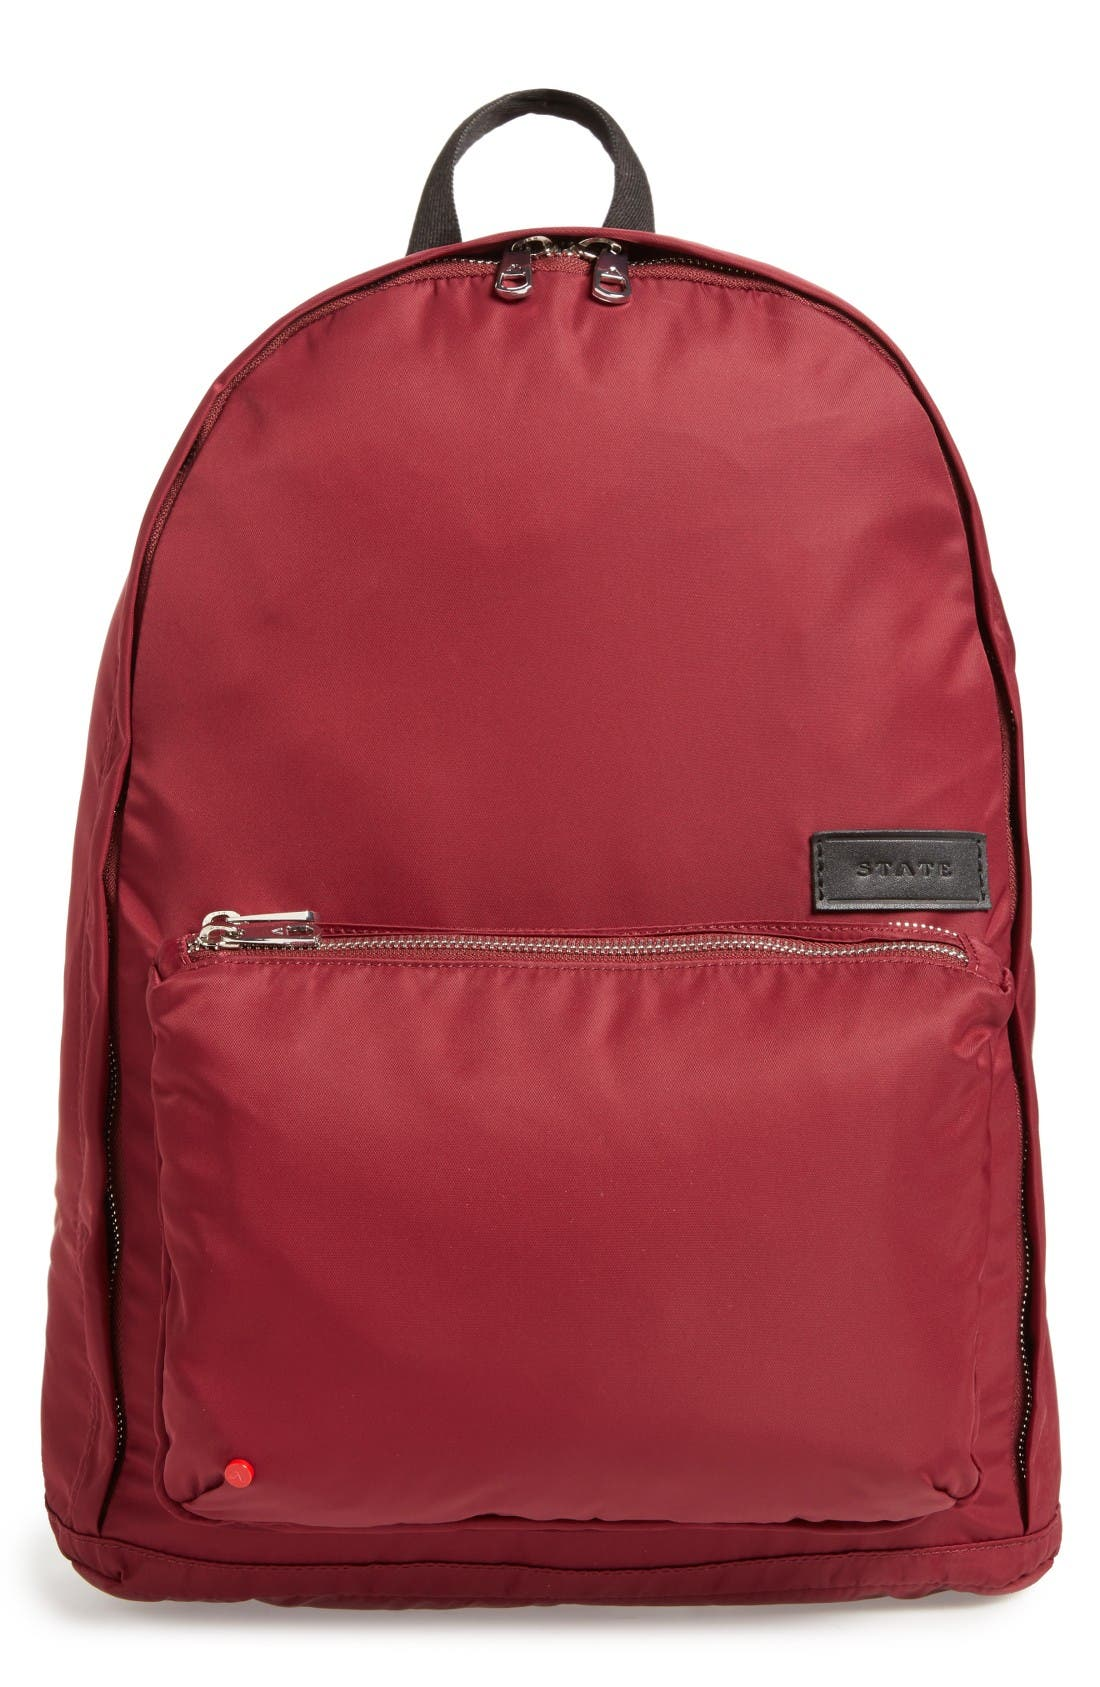 Main Image - STATE Bags Lorimer Nylon Backpack